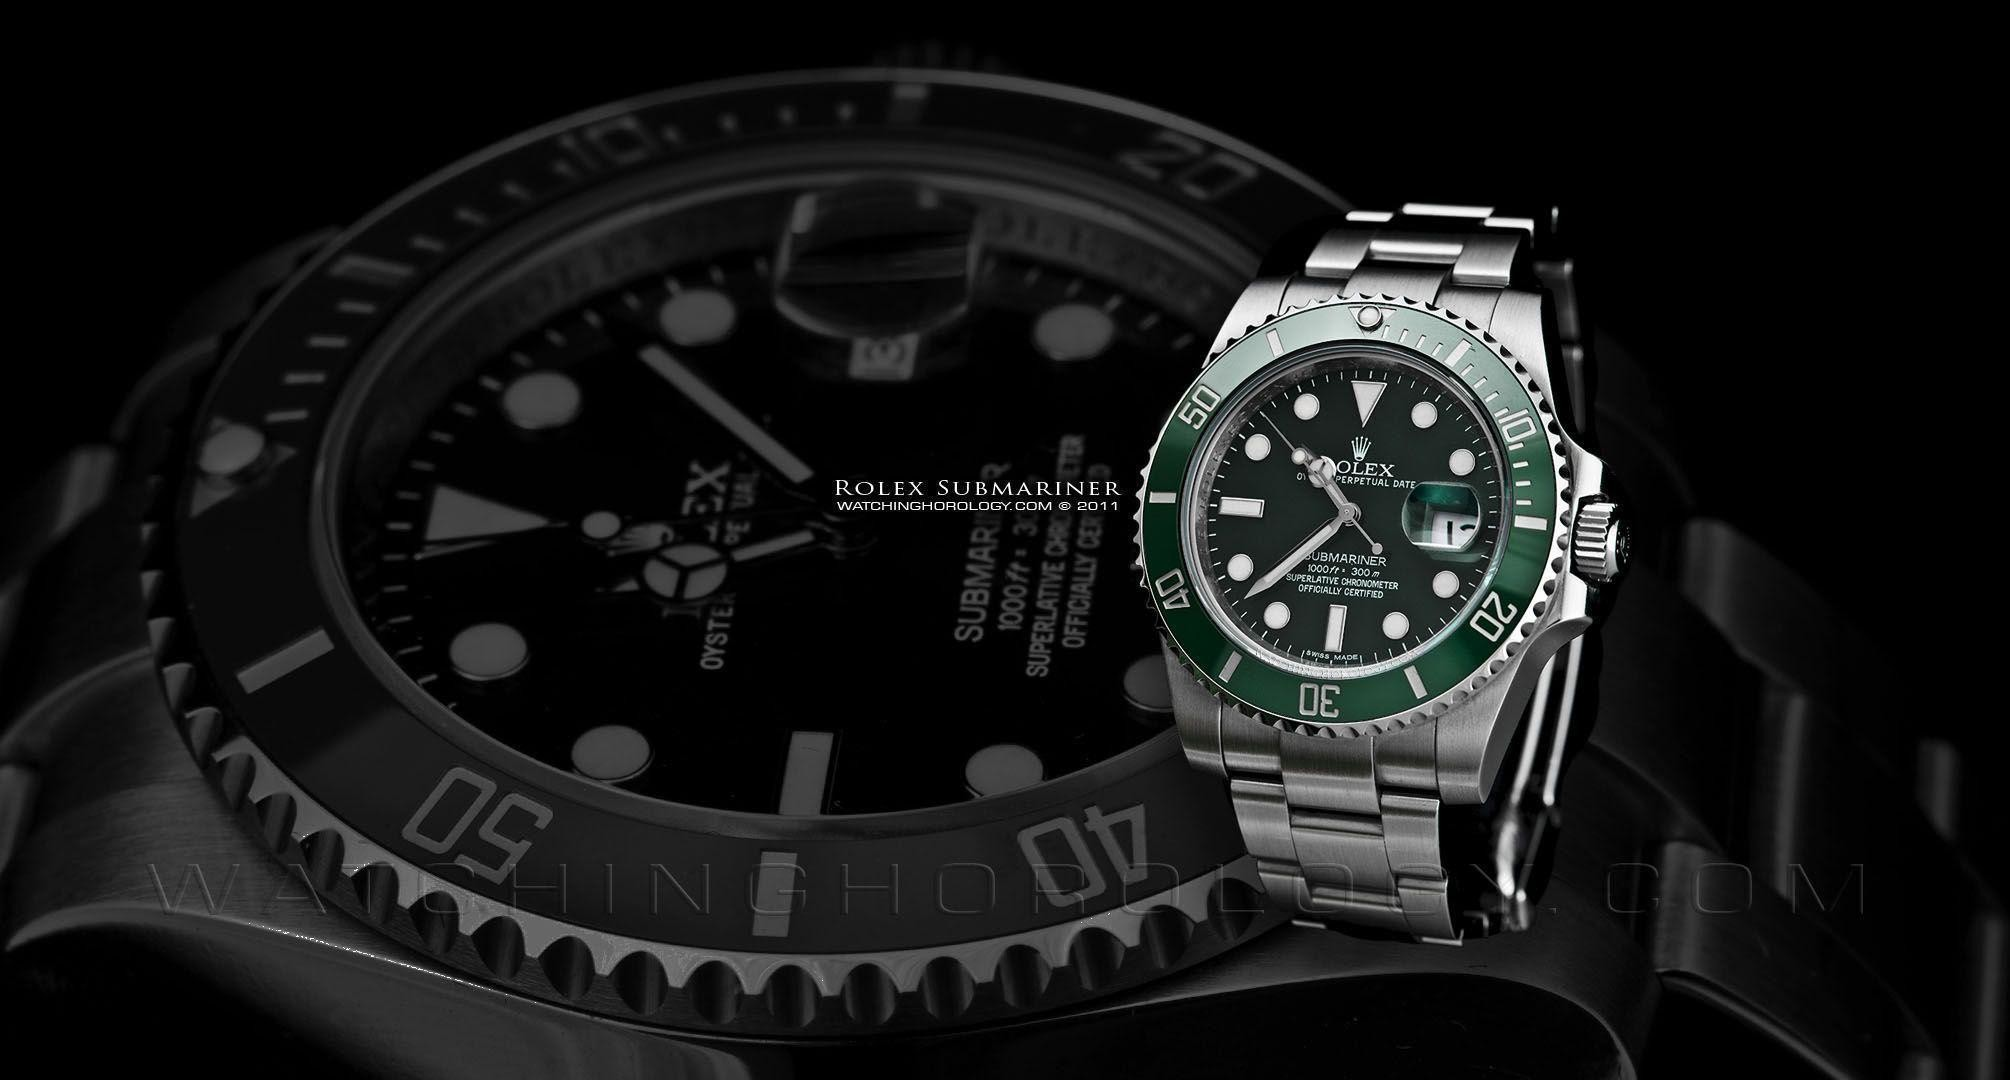 Res: 2010x1080, Latest Rolex Watch HD Wallpaper Free Download | HD Free Wallpapers .